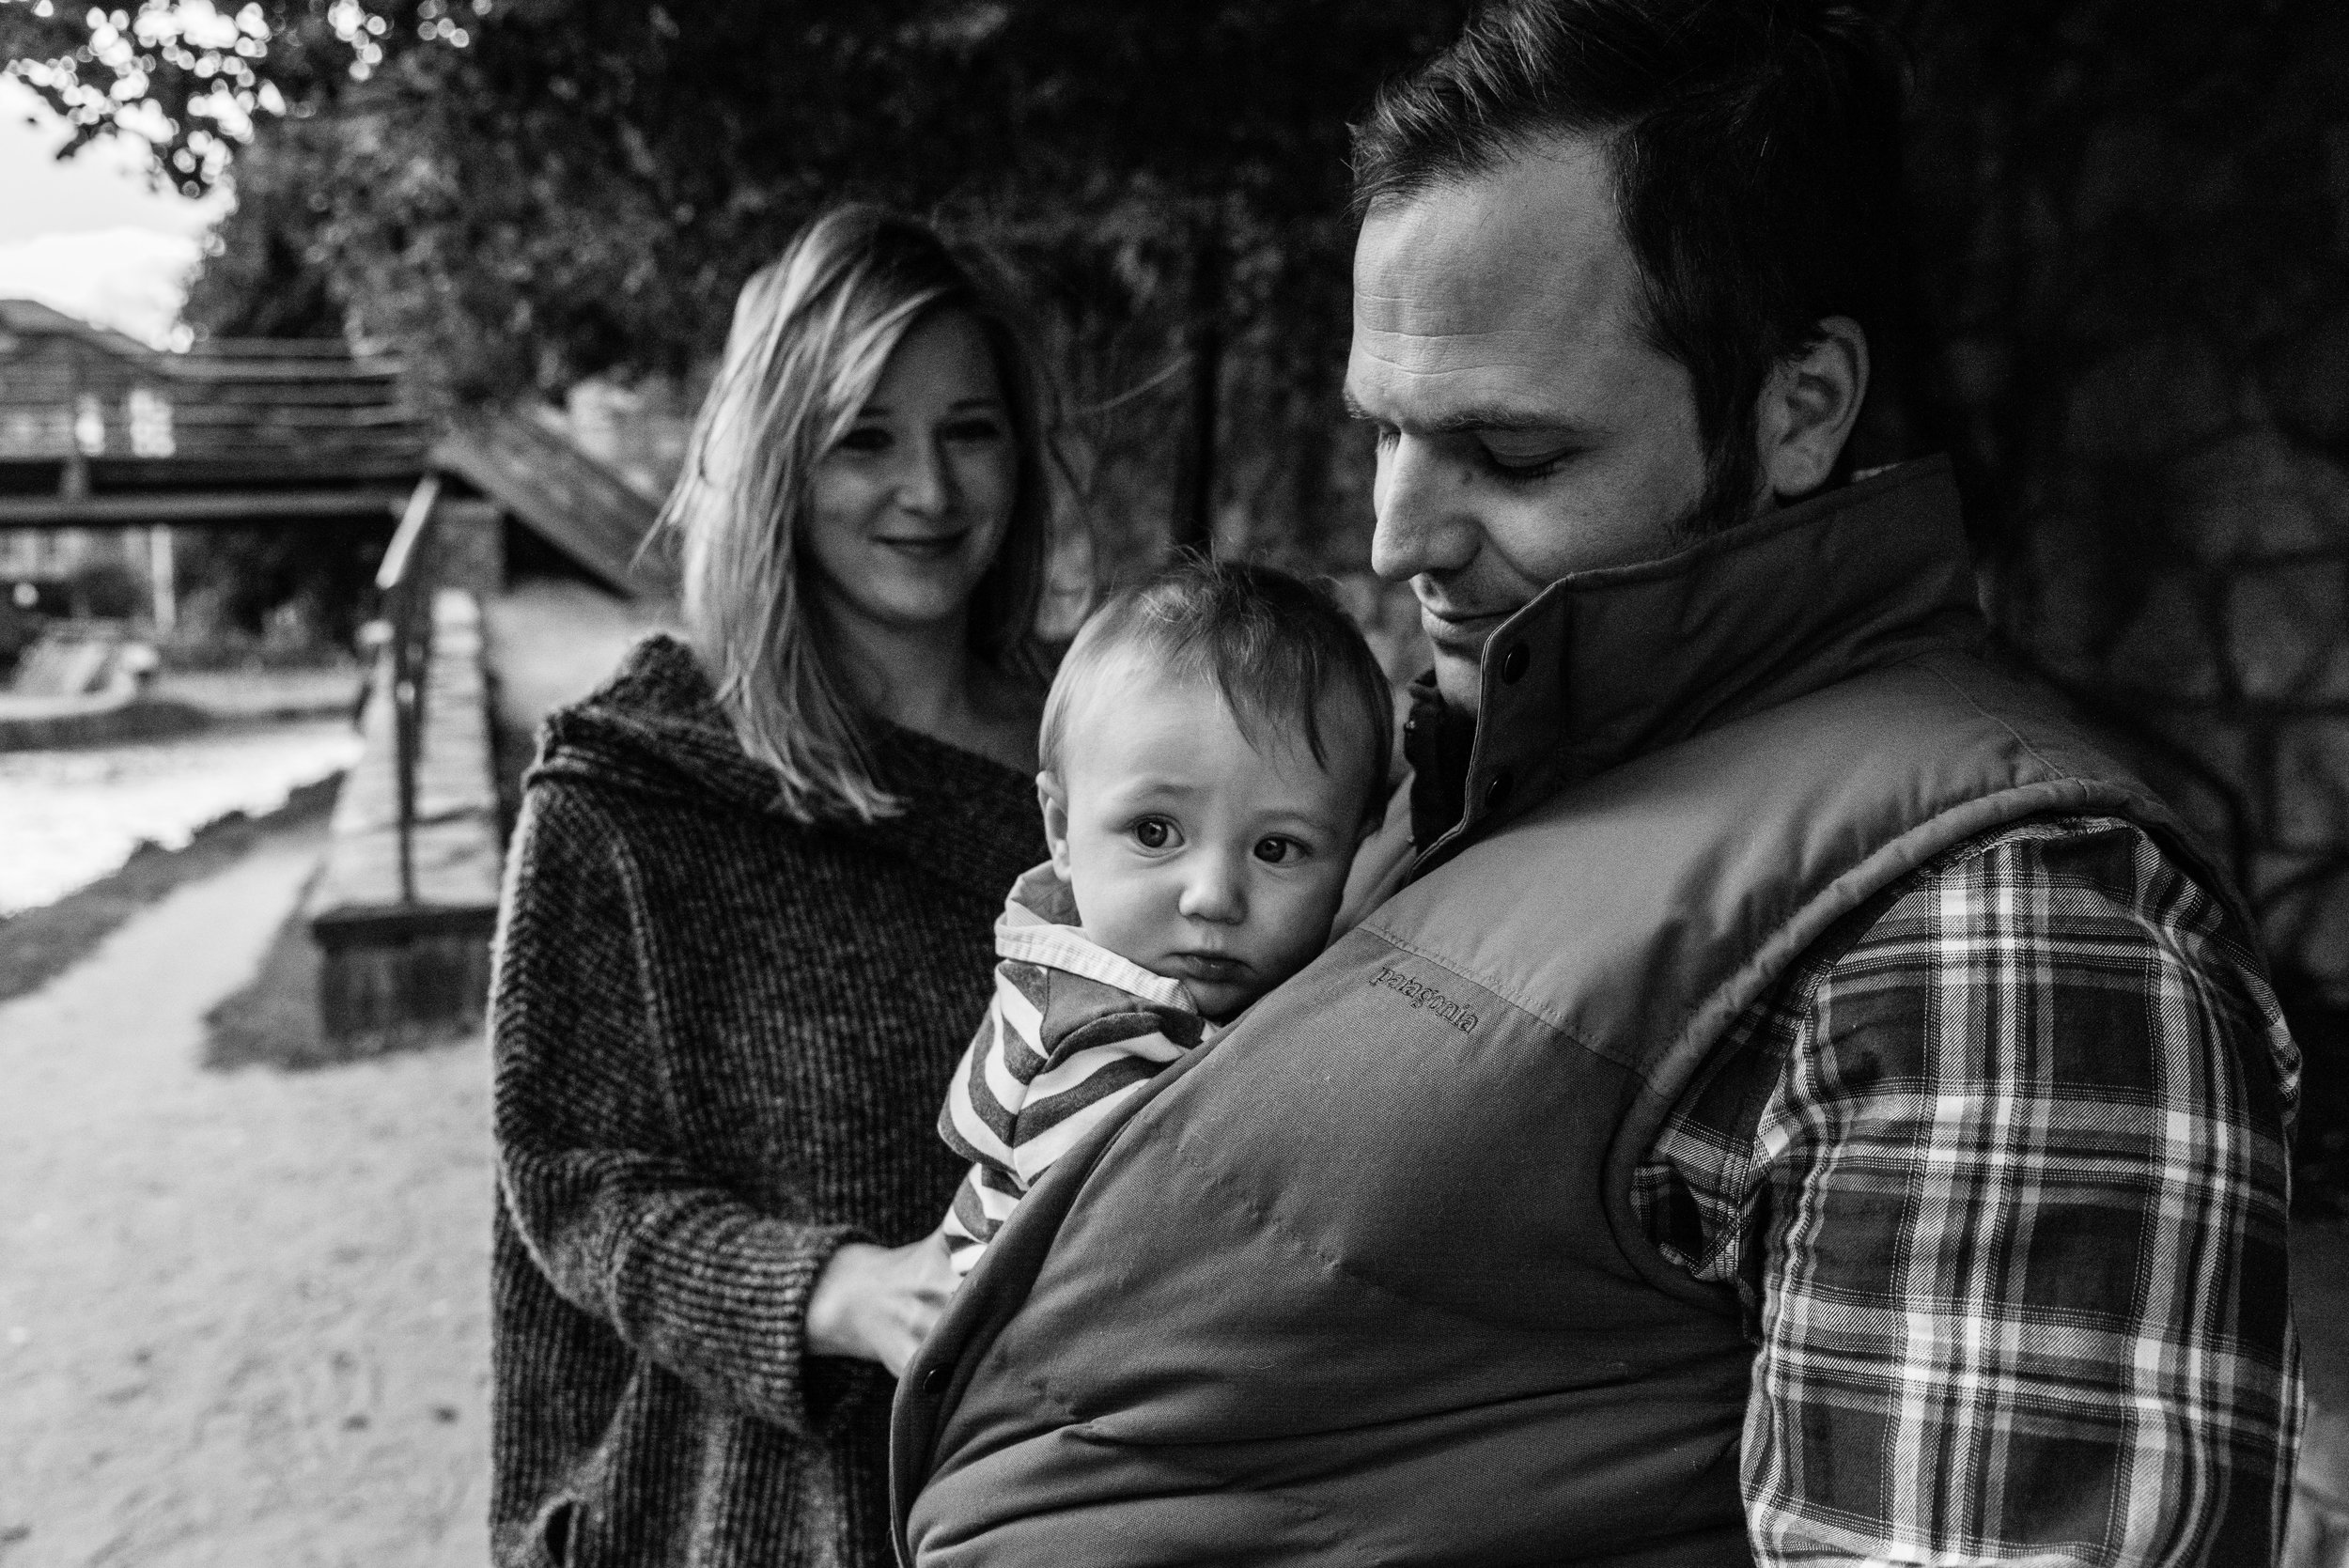 Mom snuggling baby with Dad watching | Nicole Sanchez Family Documentary Photographer